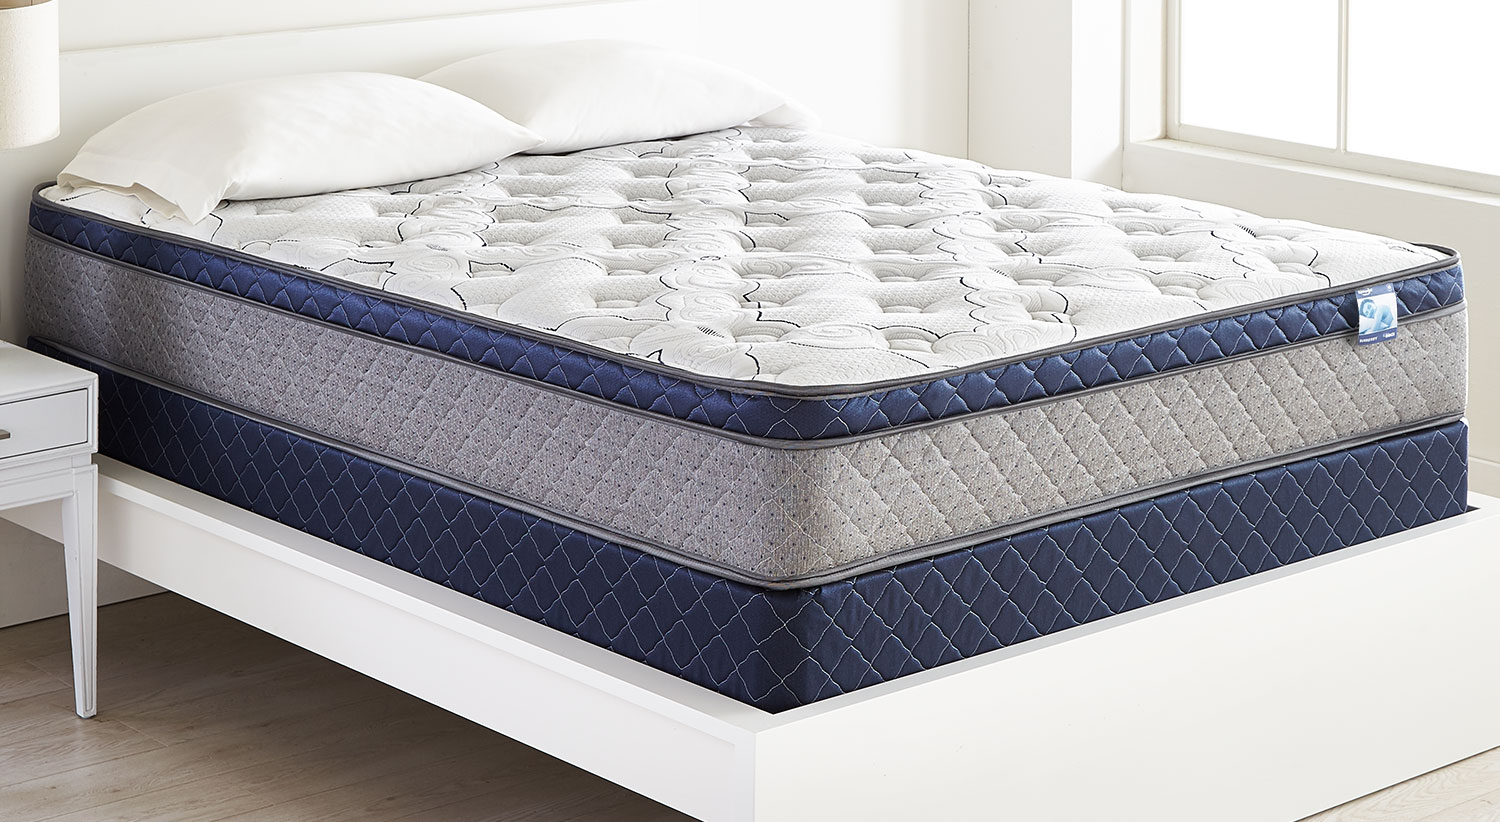 Top Queen Mattress And Boxspring Set